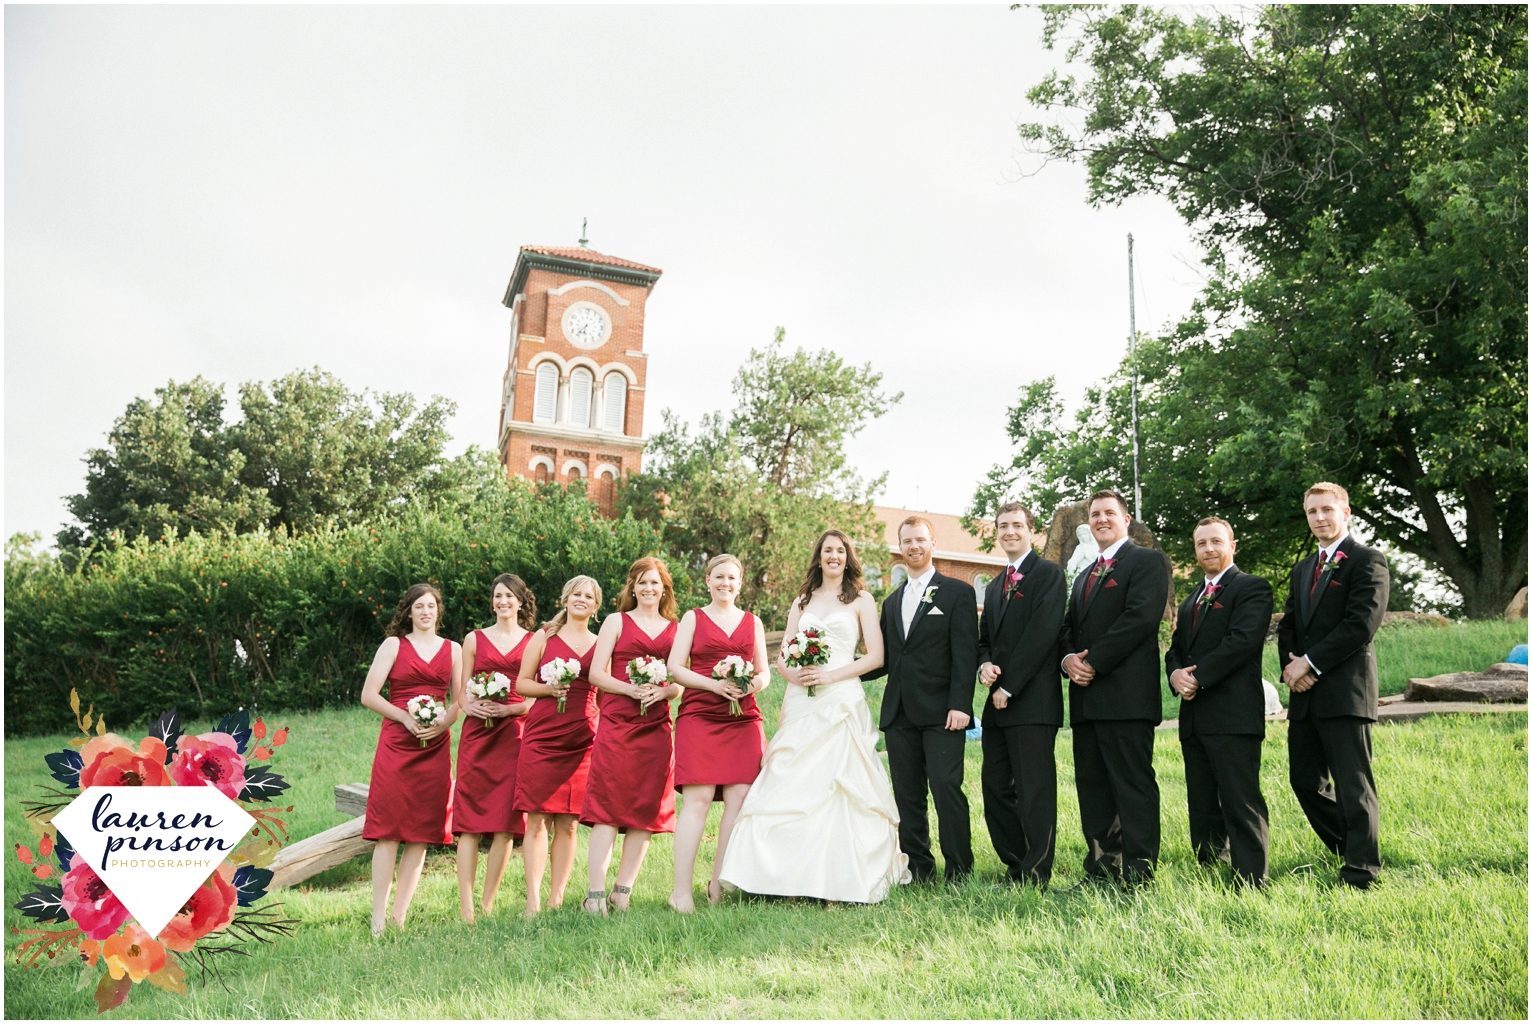 wichita-falls-wedding-photographer-OUR-Lady-queen-of-peace-catholic-wedding-the-forum-photography_0938.jpg